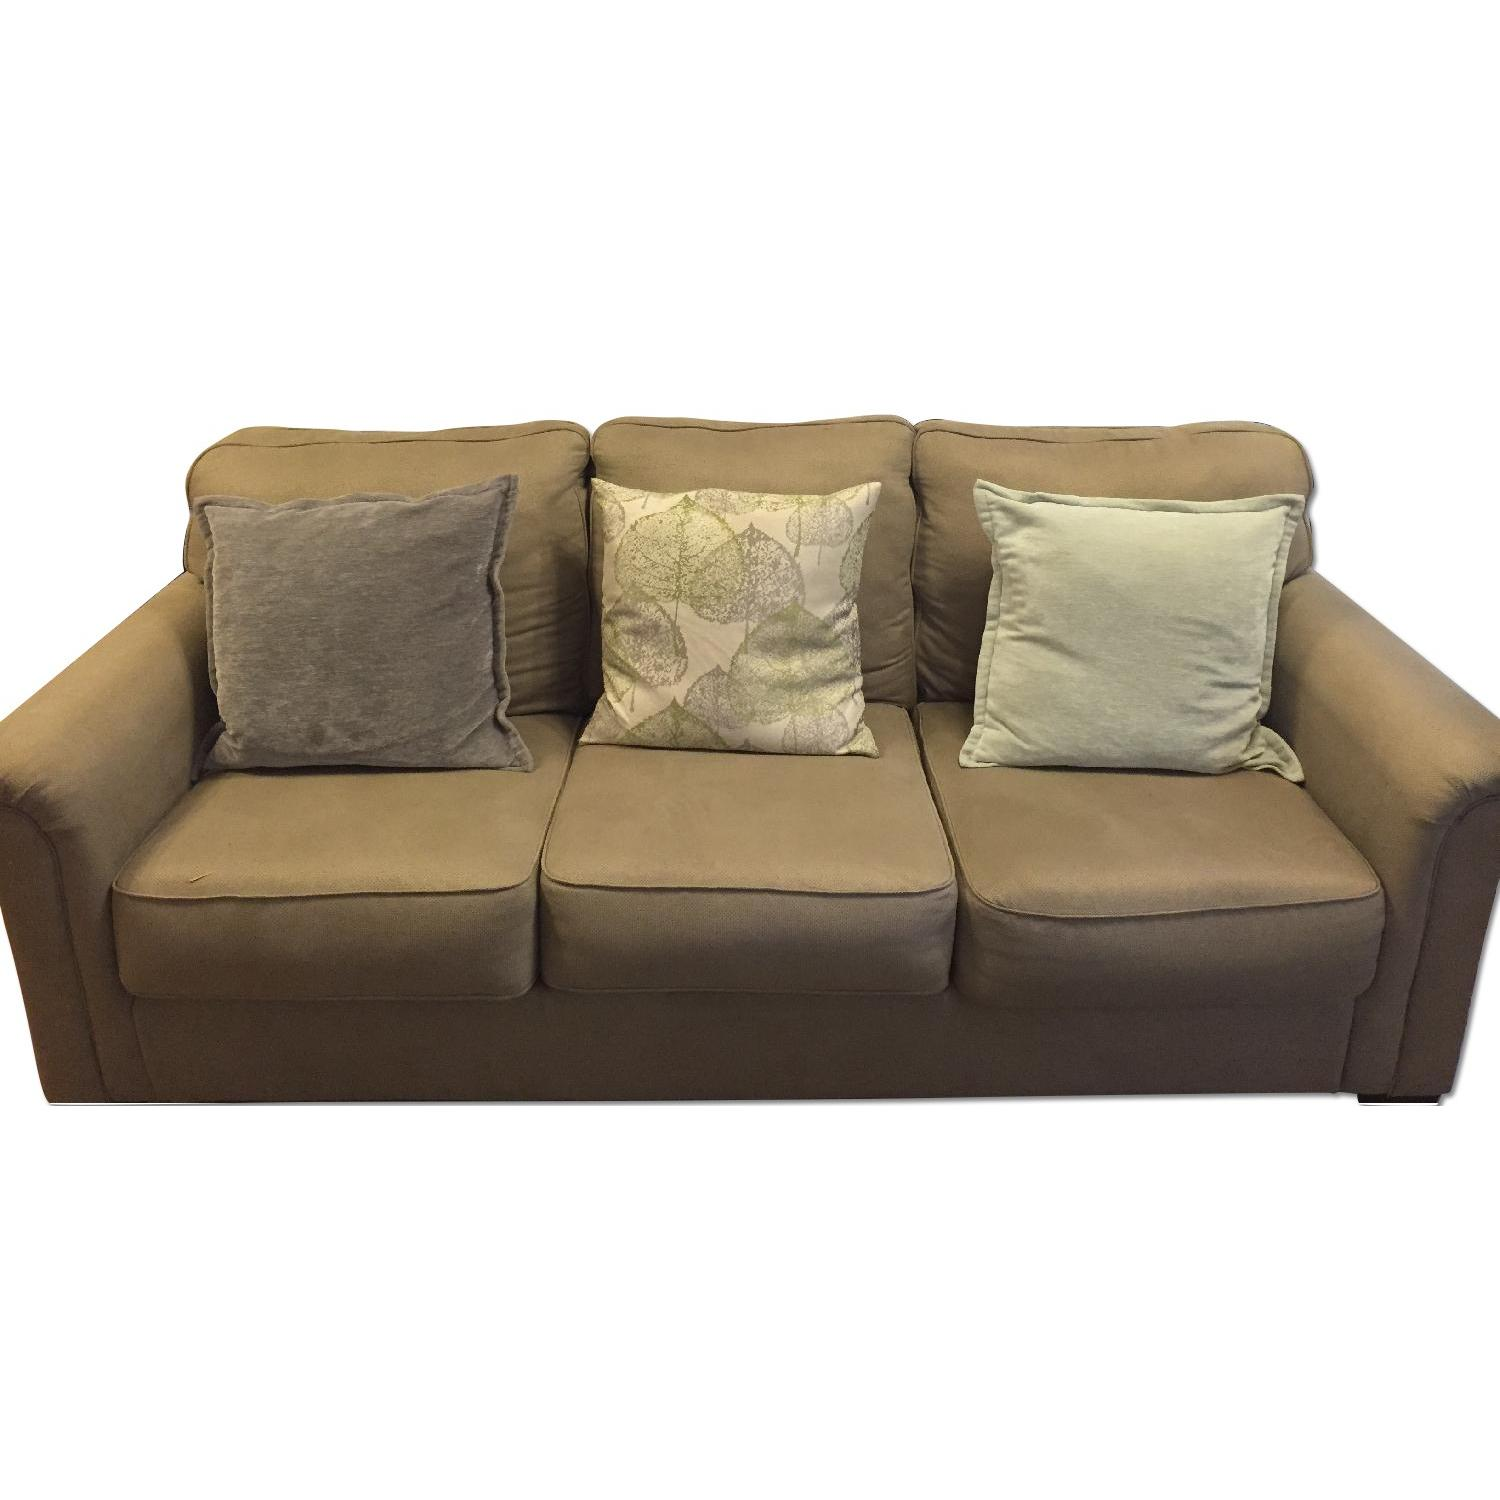 Ashley's Tan Couch - image-0